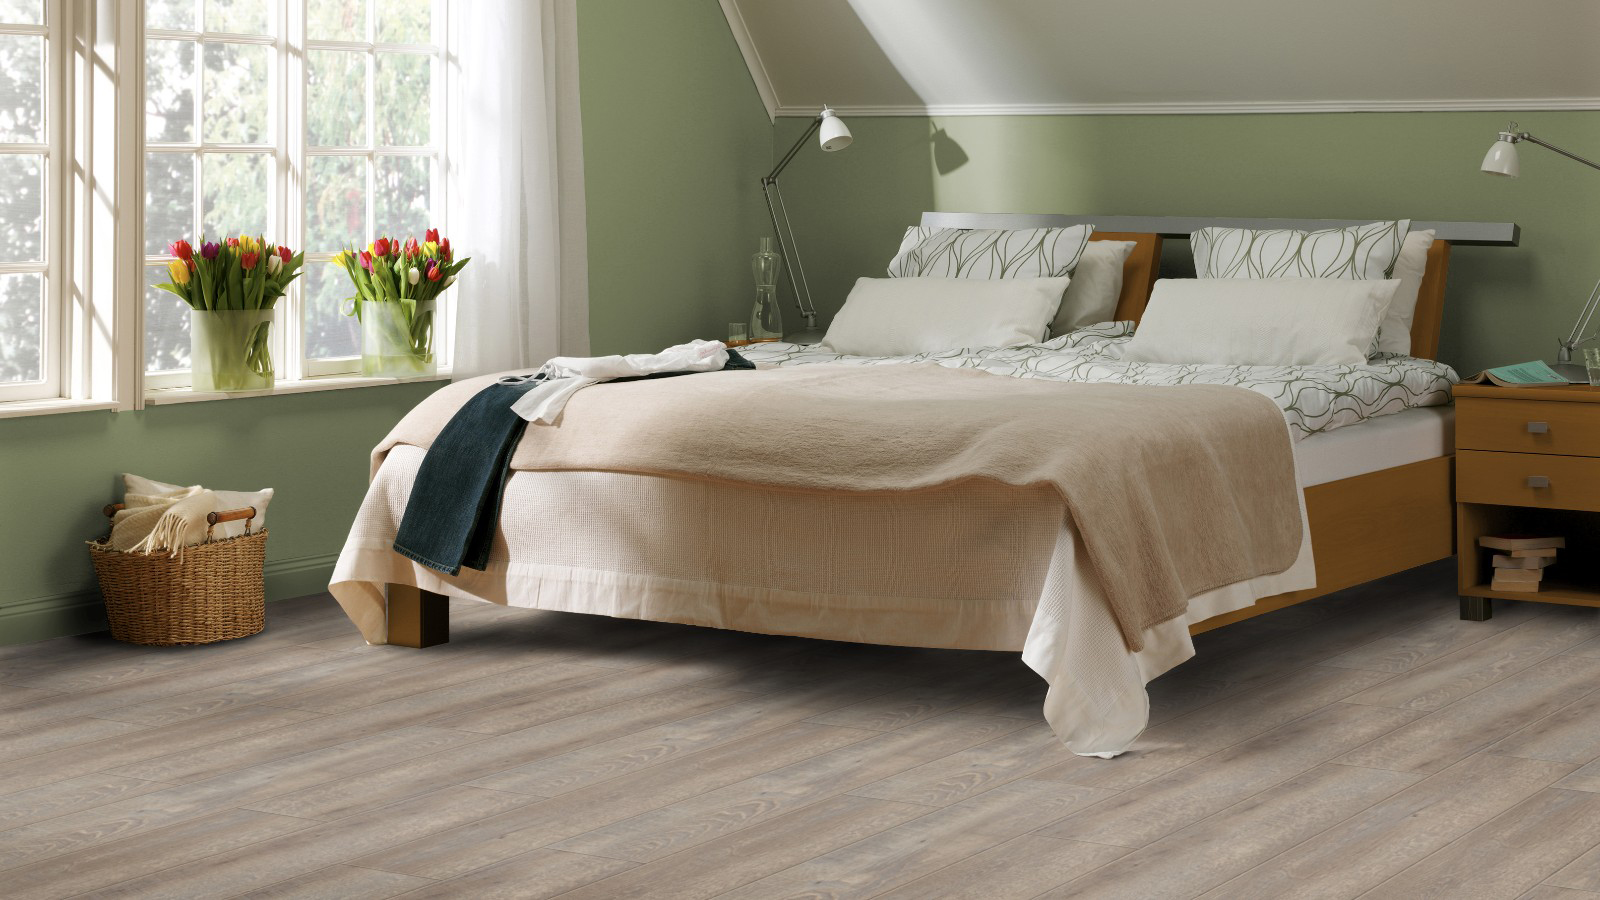 Impressionen – Tarkett Designvinyl Starfloor 30 Smoked oak light grey